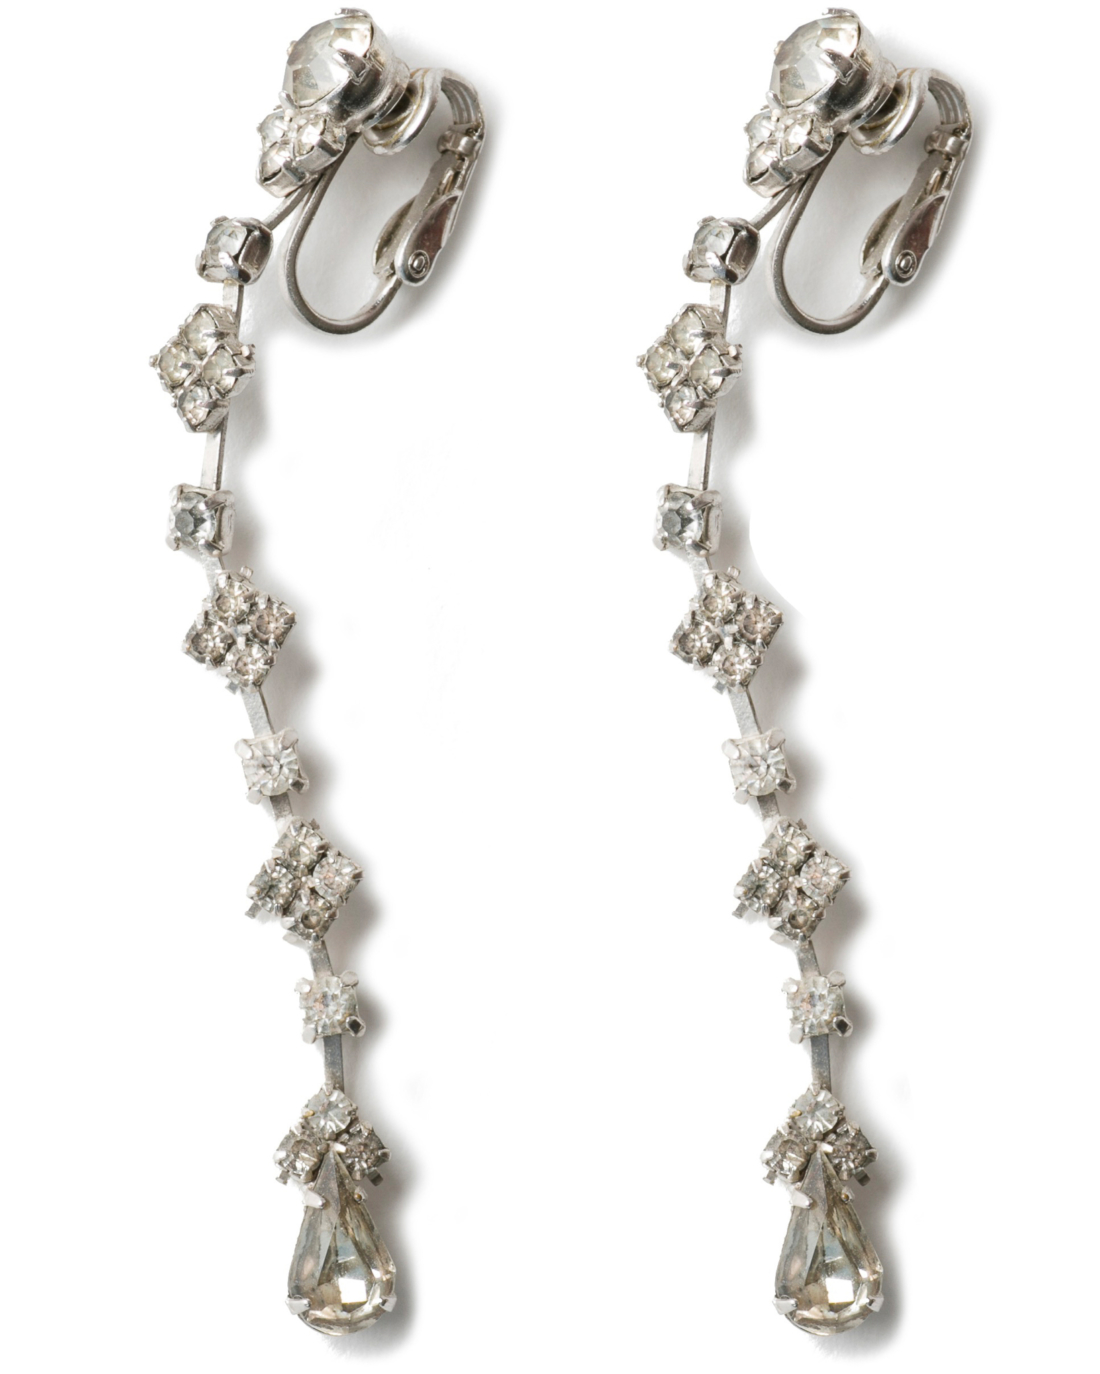 Vintage Art Deco Silver Paste Long Drop earrings, circa 1920's